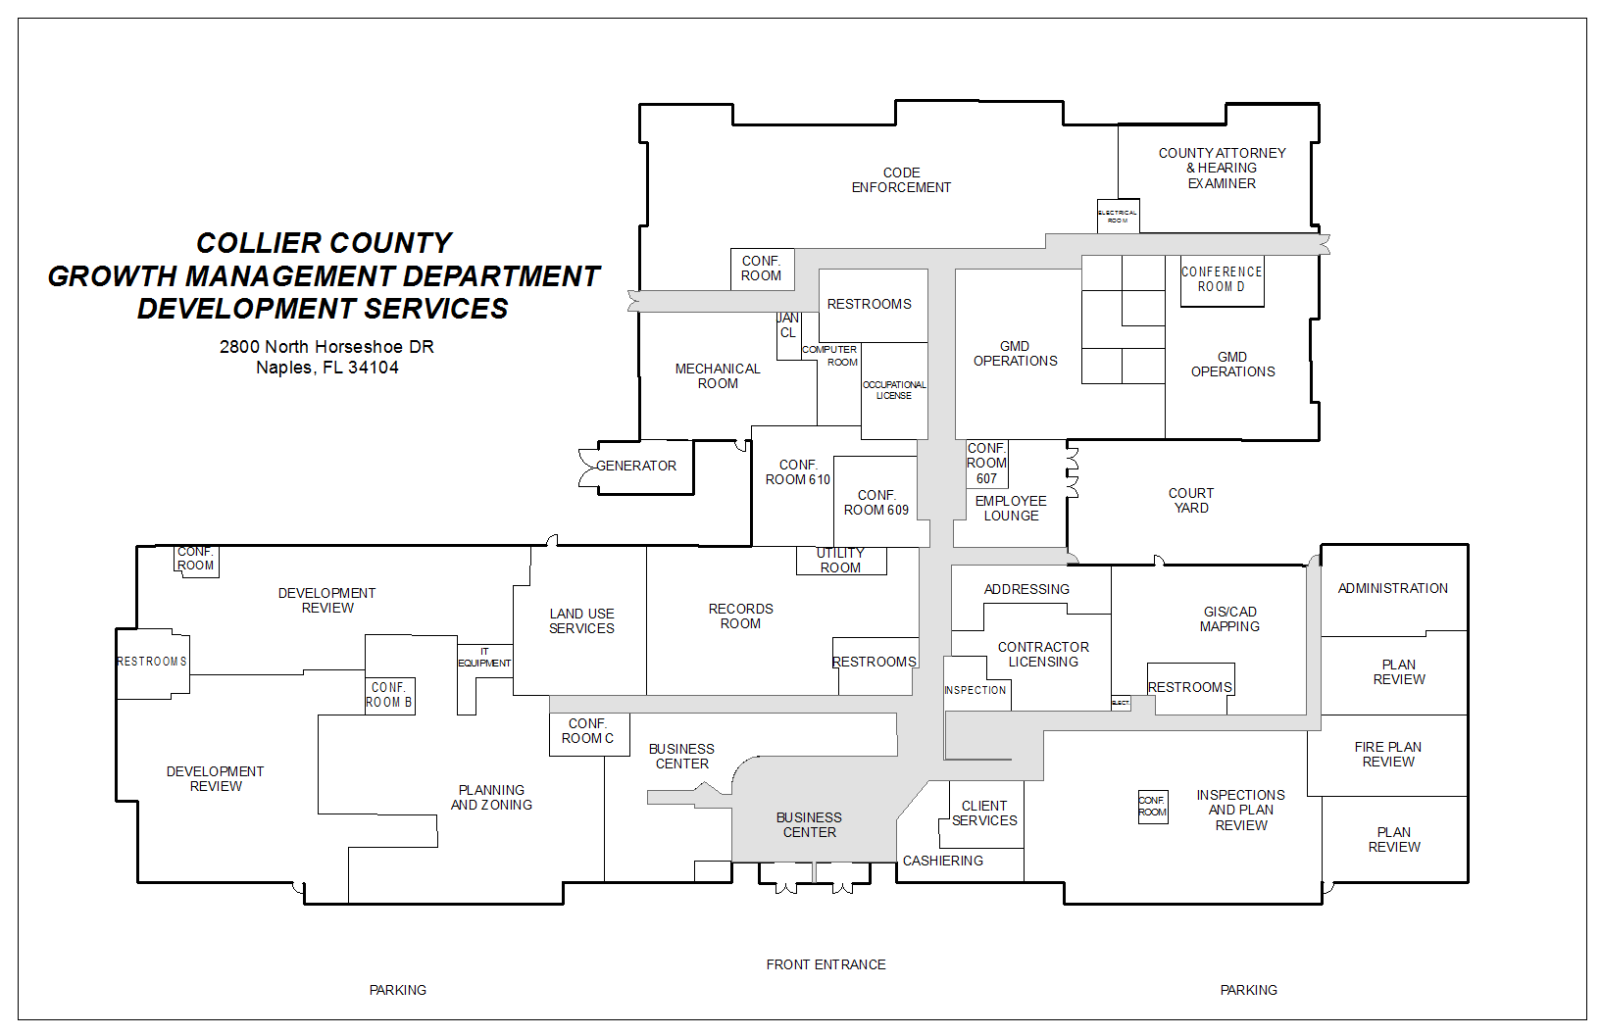 Map Of Naples Florida.Growth Management Department North Horseshoe Building Map Collier